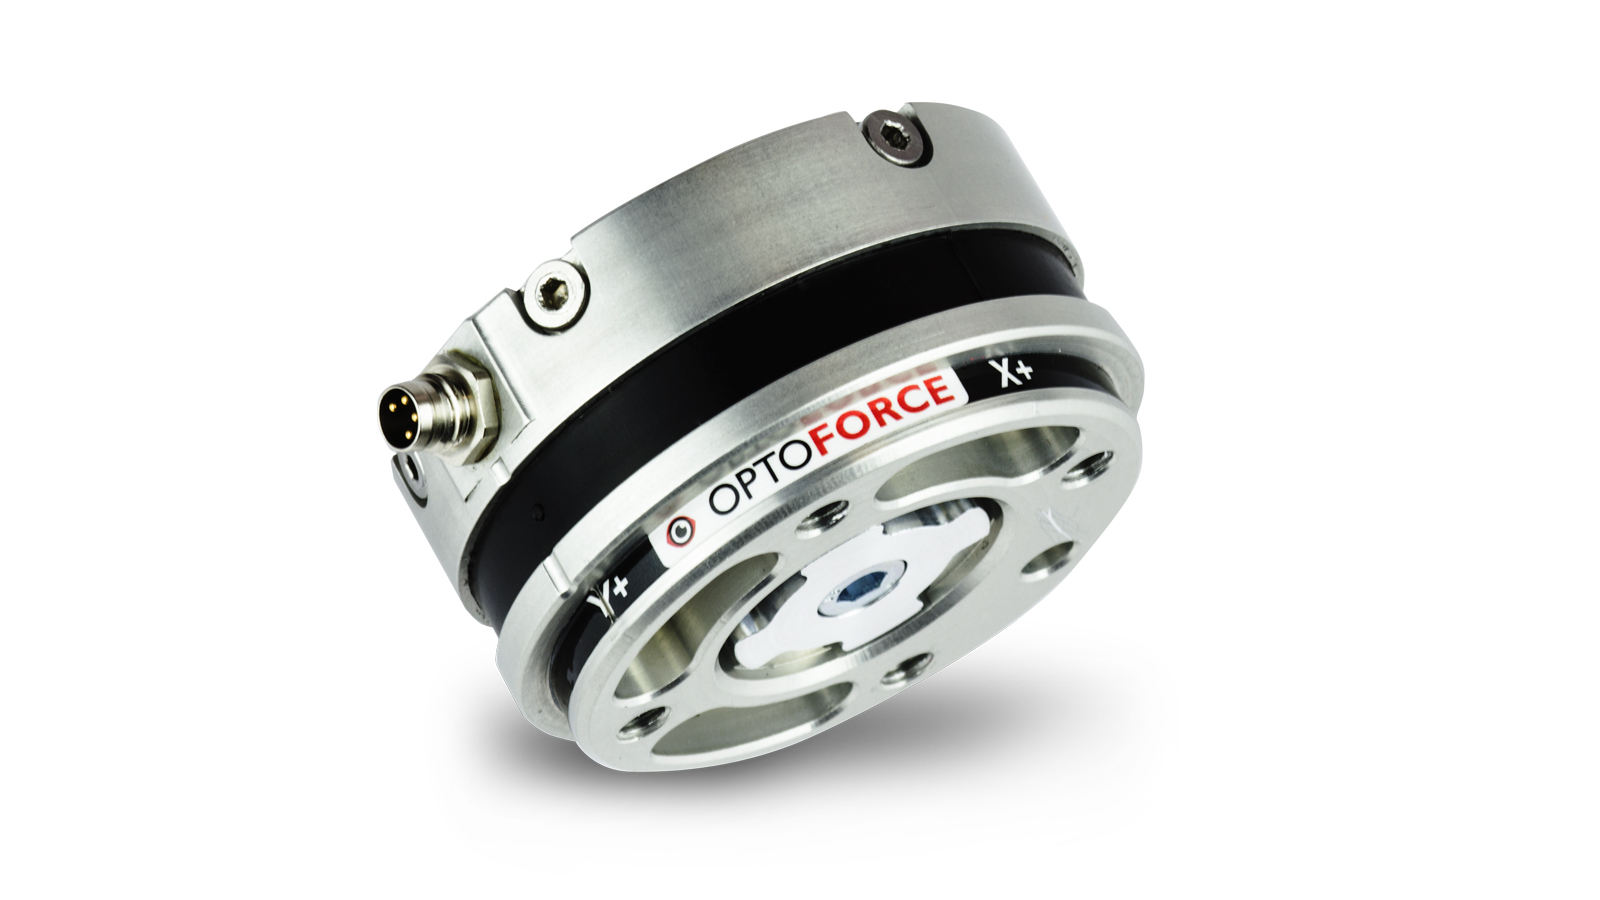 Optoforce Sensor HEX-E/HEX-H